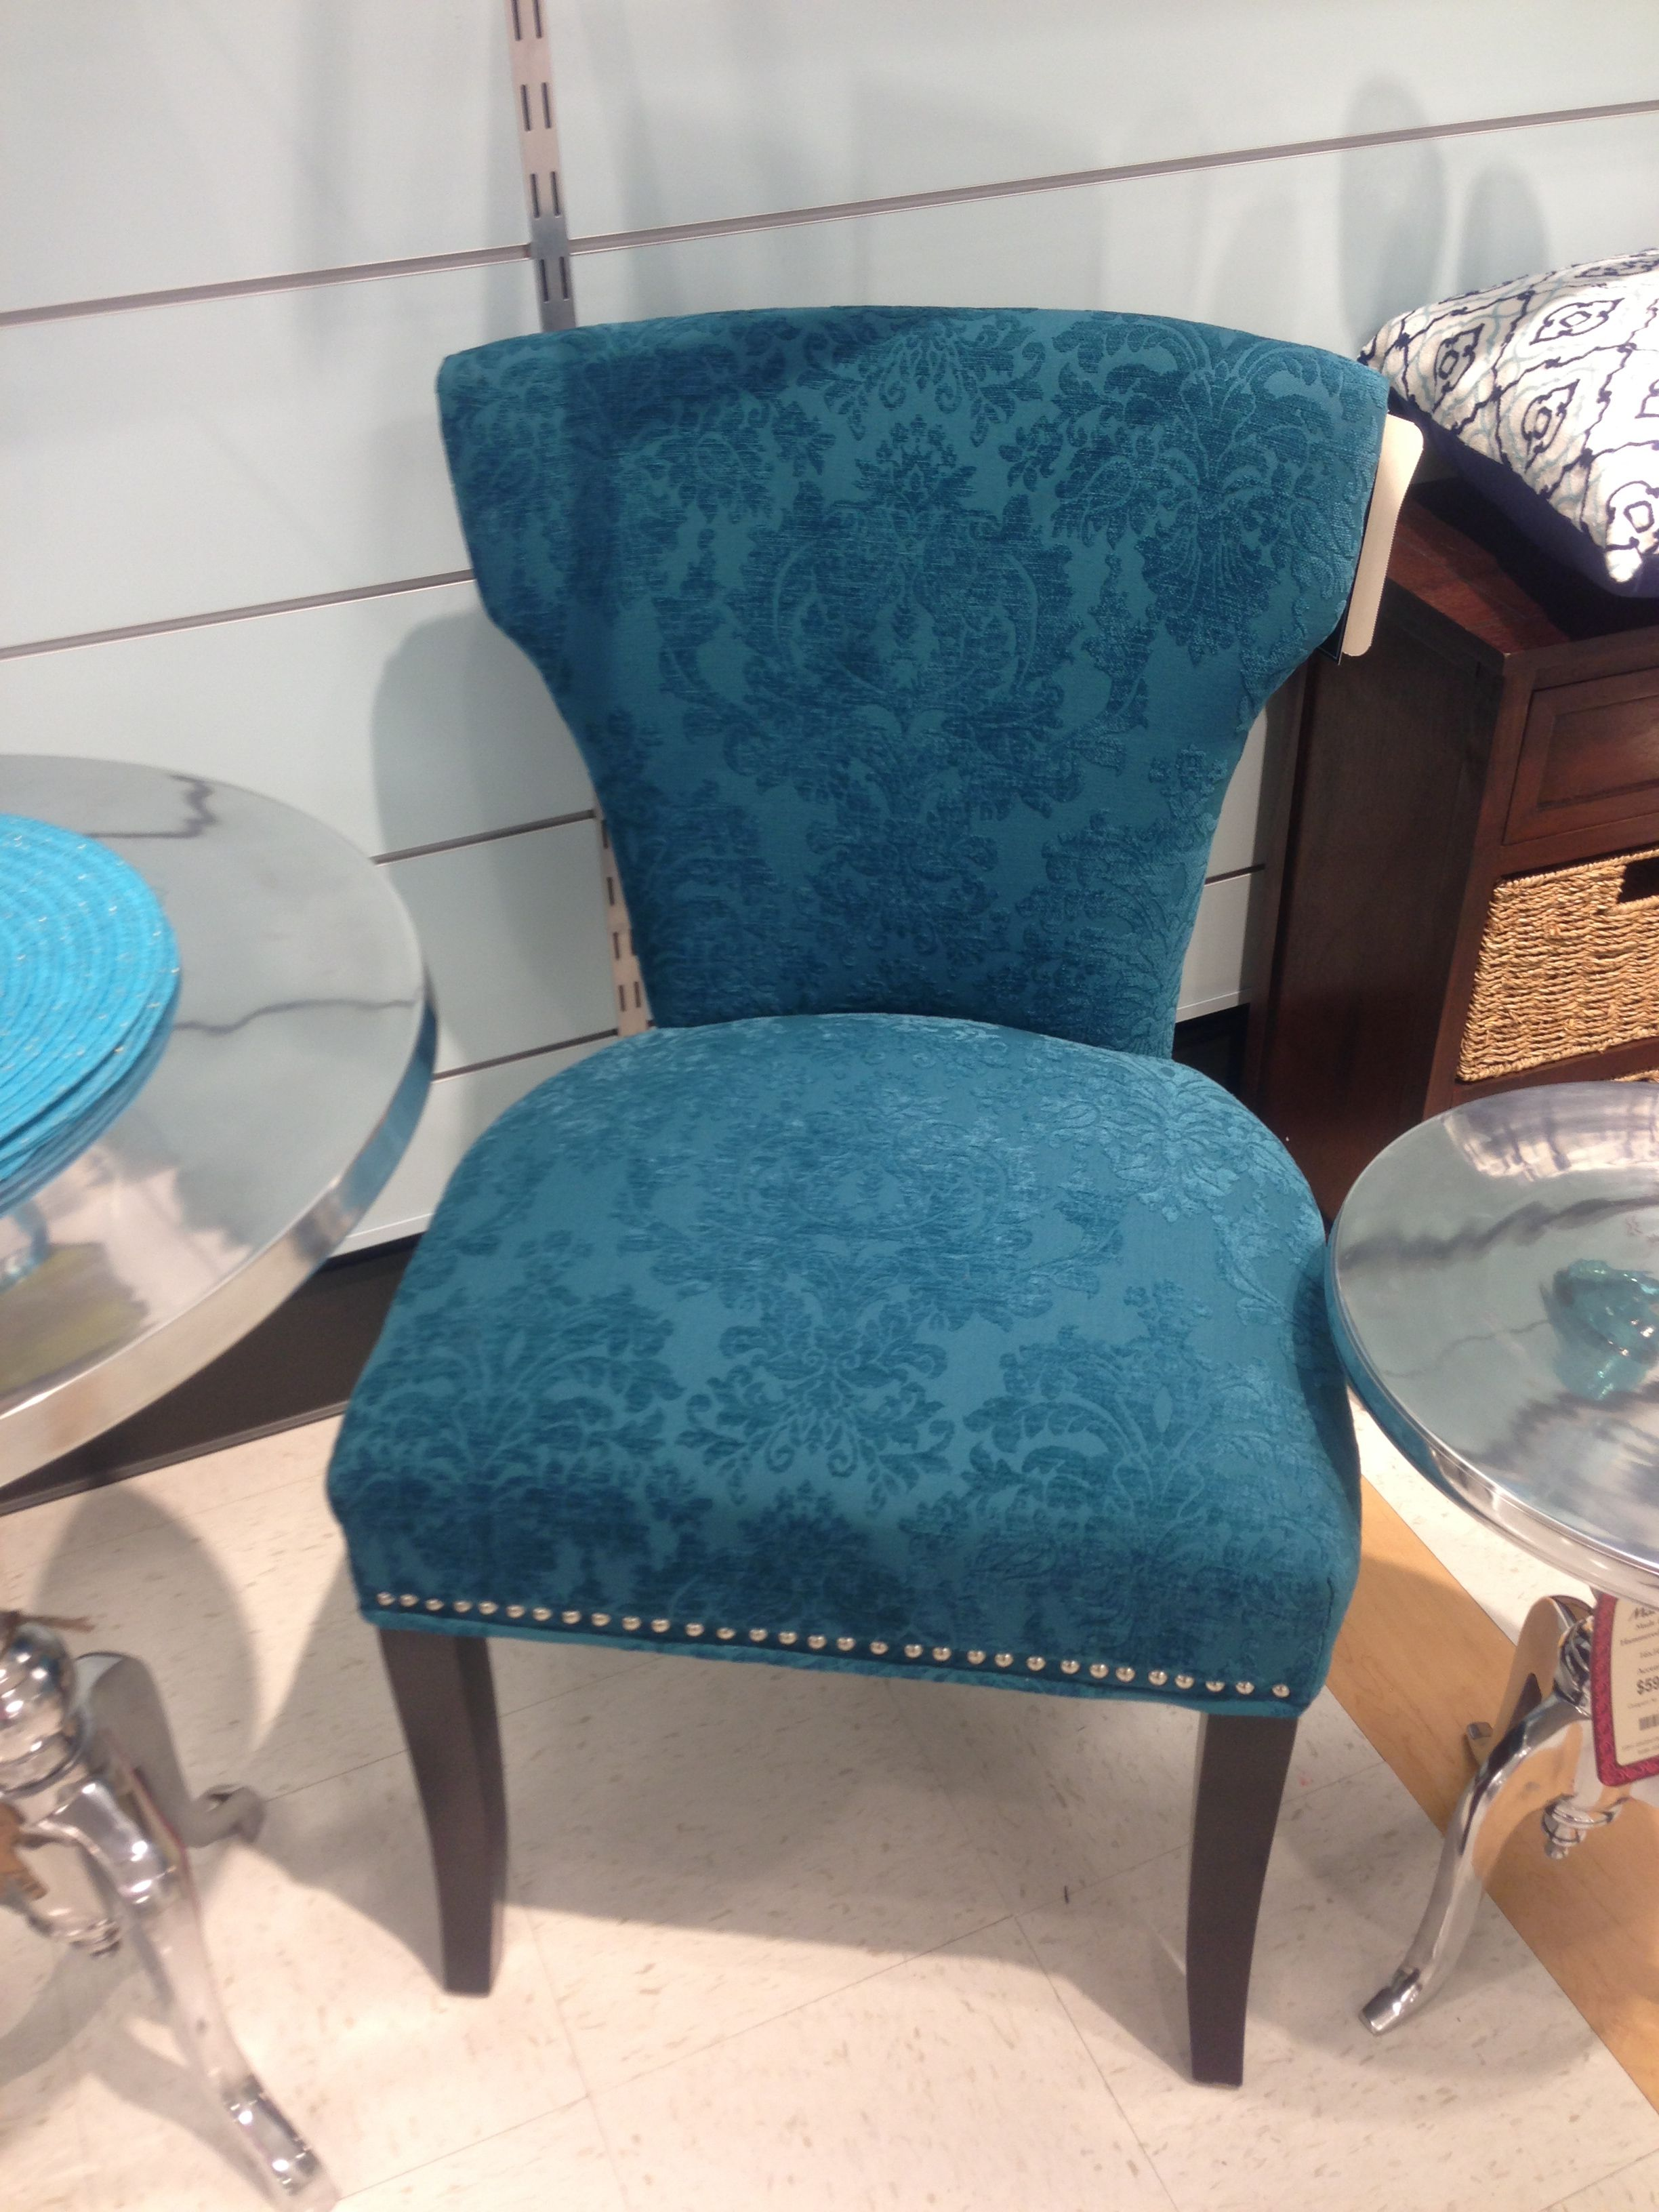 cynthia rowley chairs at marshalls portable study chair idea like the color and structure but prefer arms for